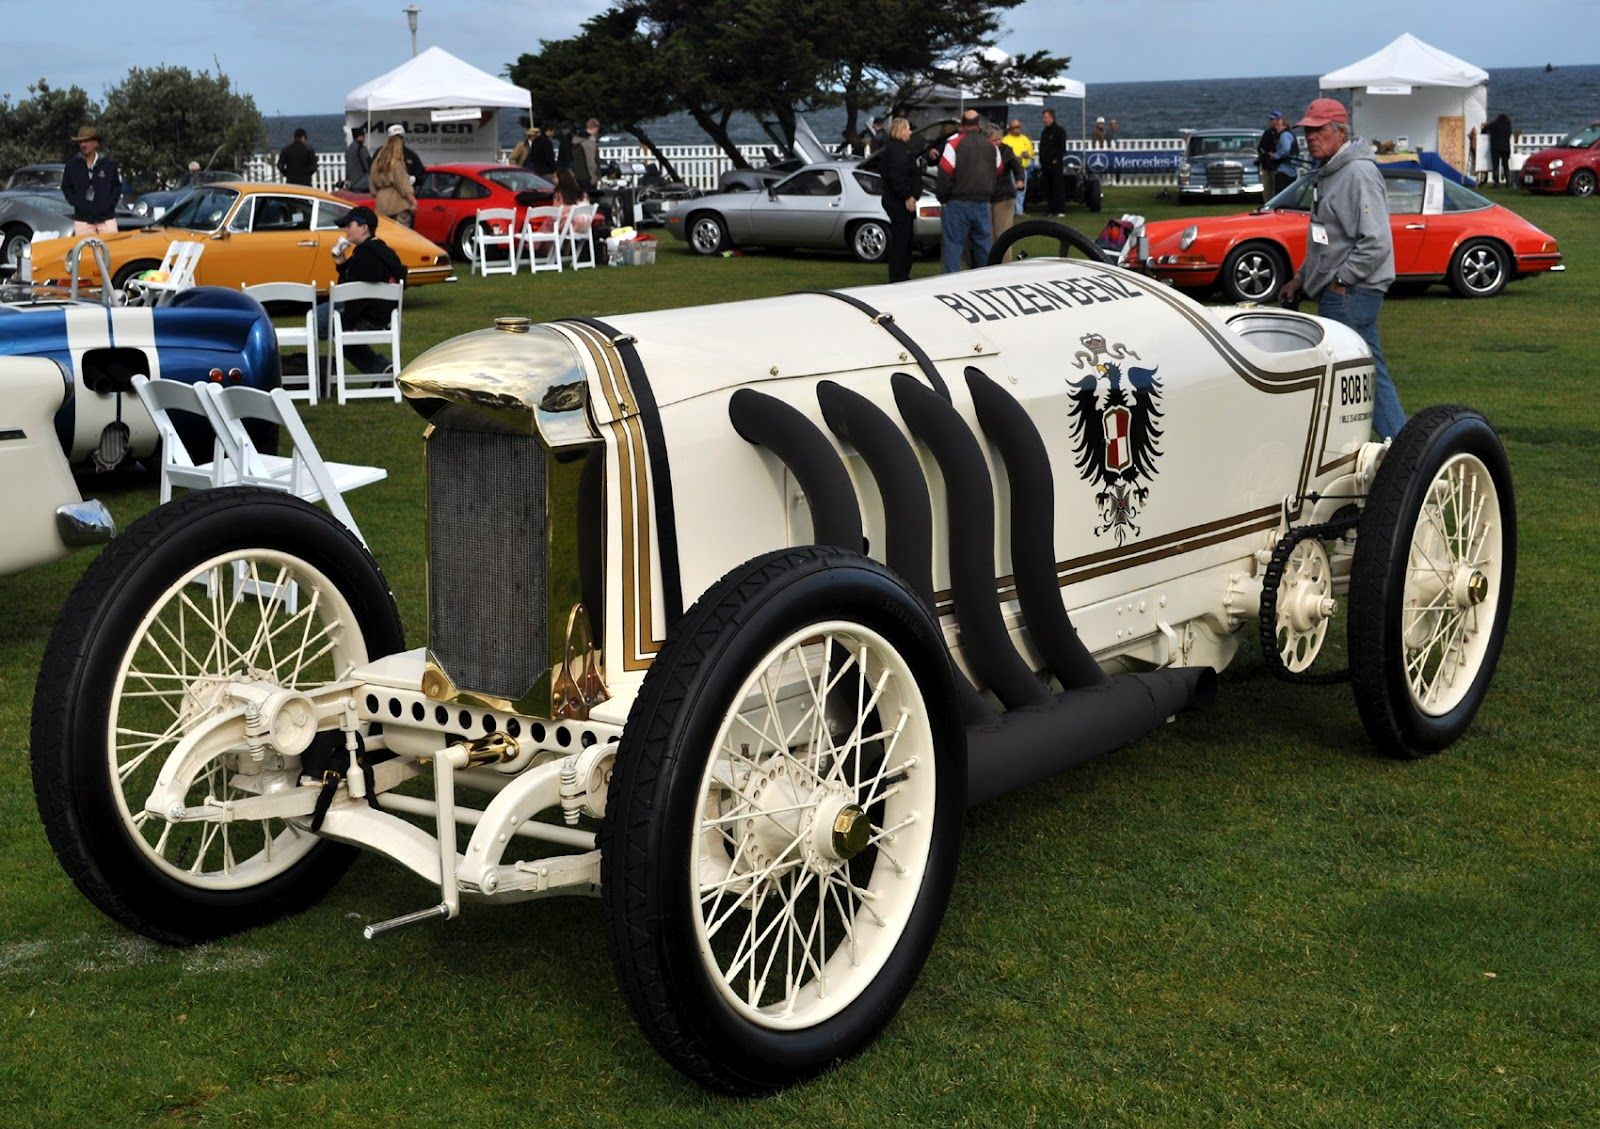 The Most Outstanding Car At The Lajolla Concours De Elegance Was The Legendary Blitzen Benz Land Speed Record Setting Automobile Fro Benz Car Vintage Race Car